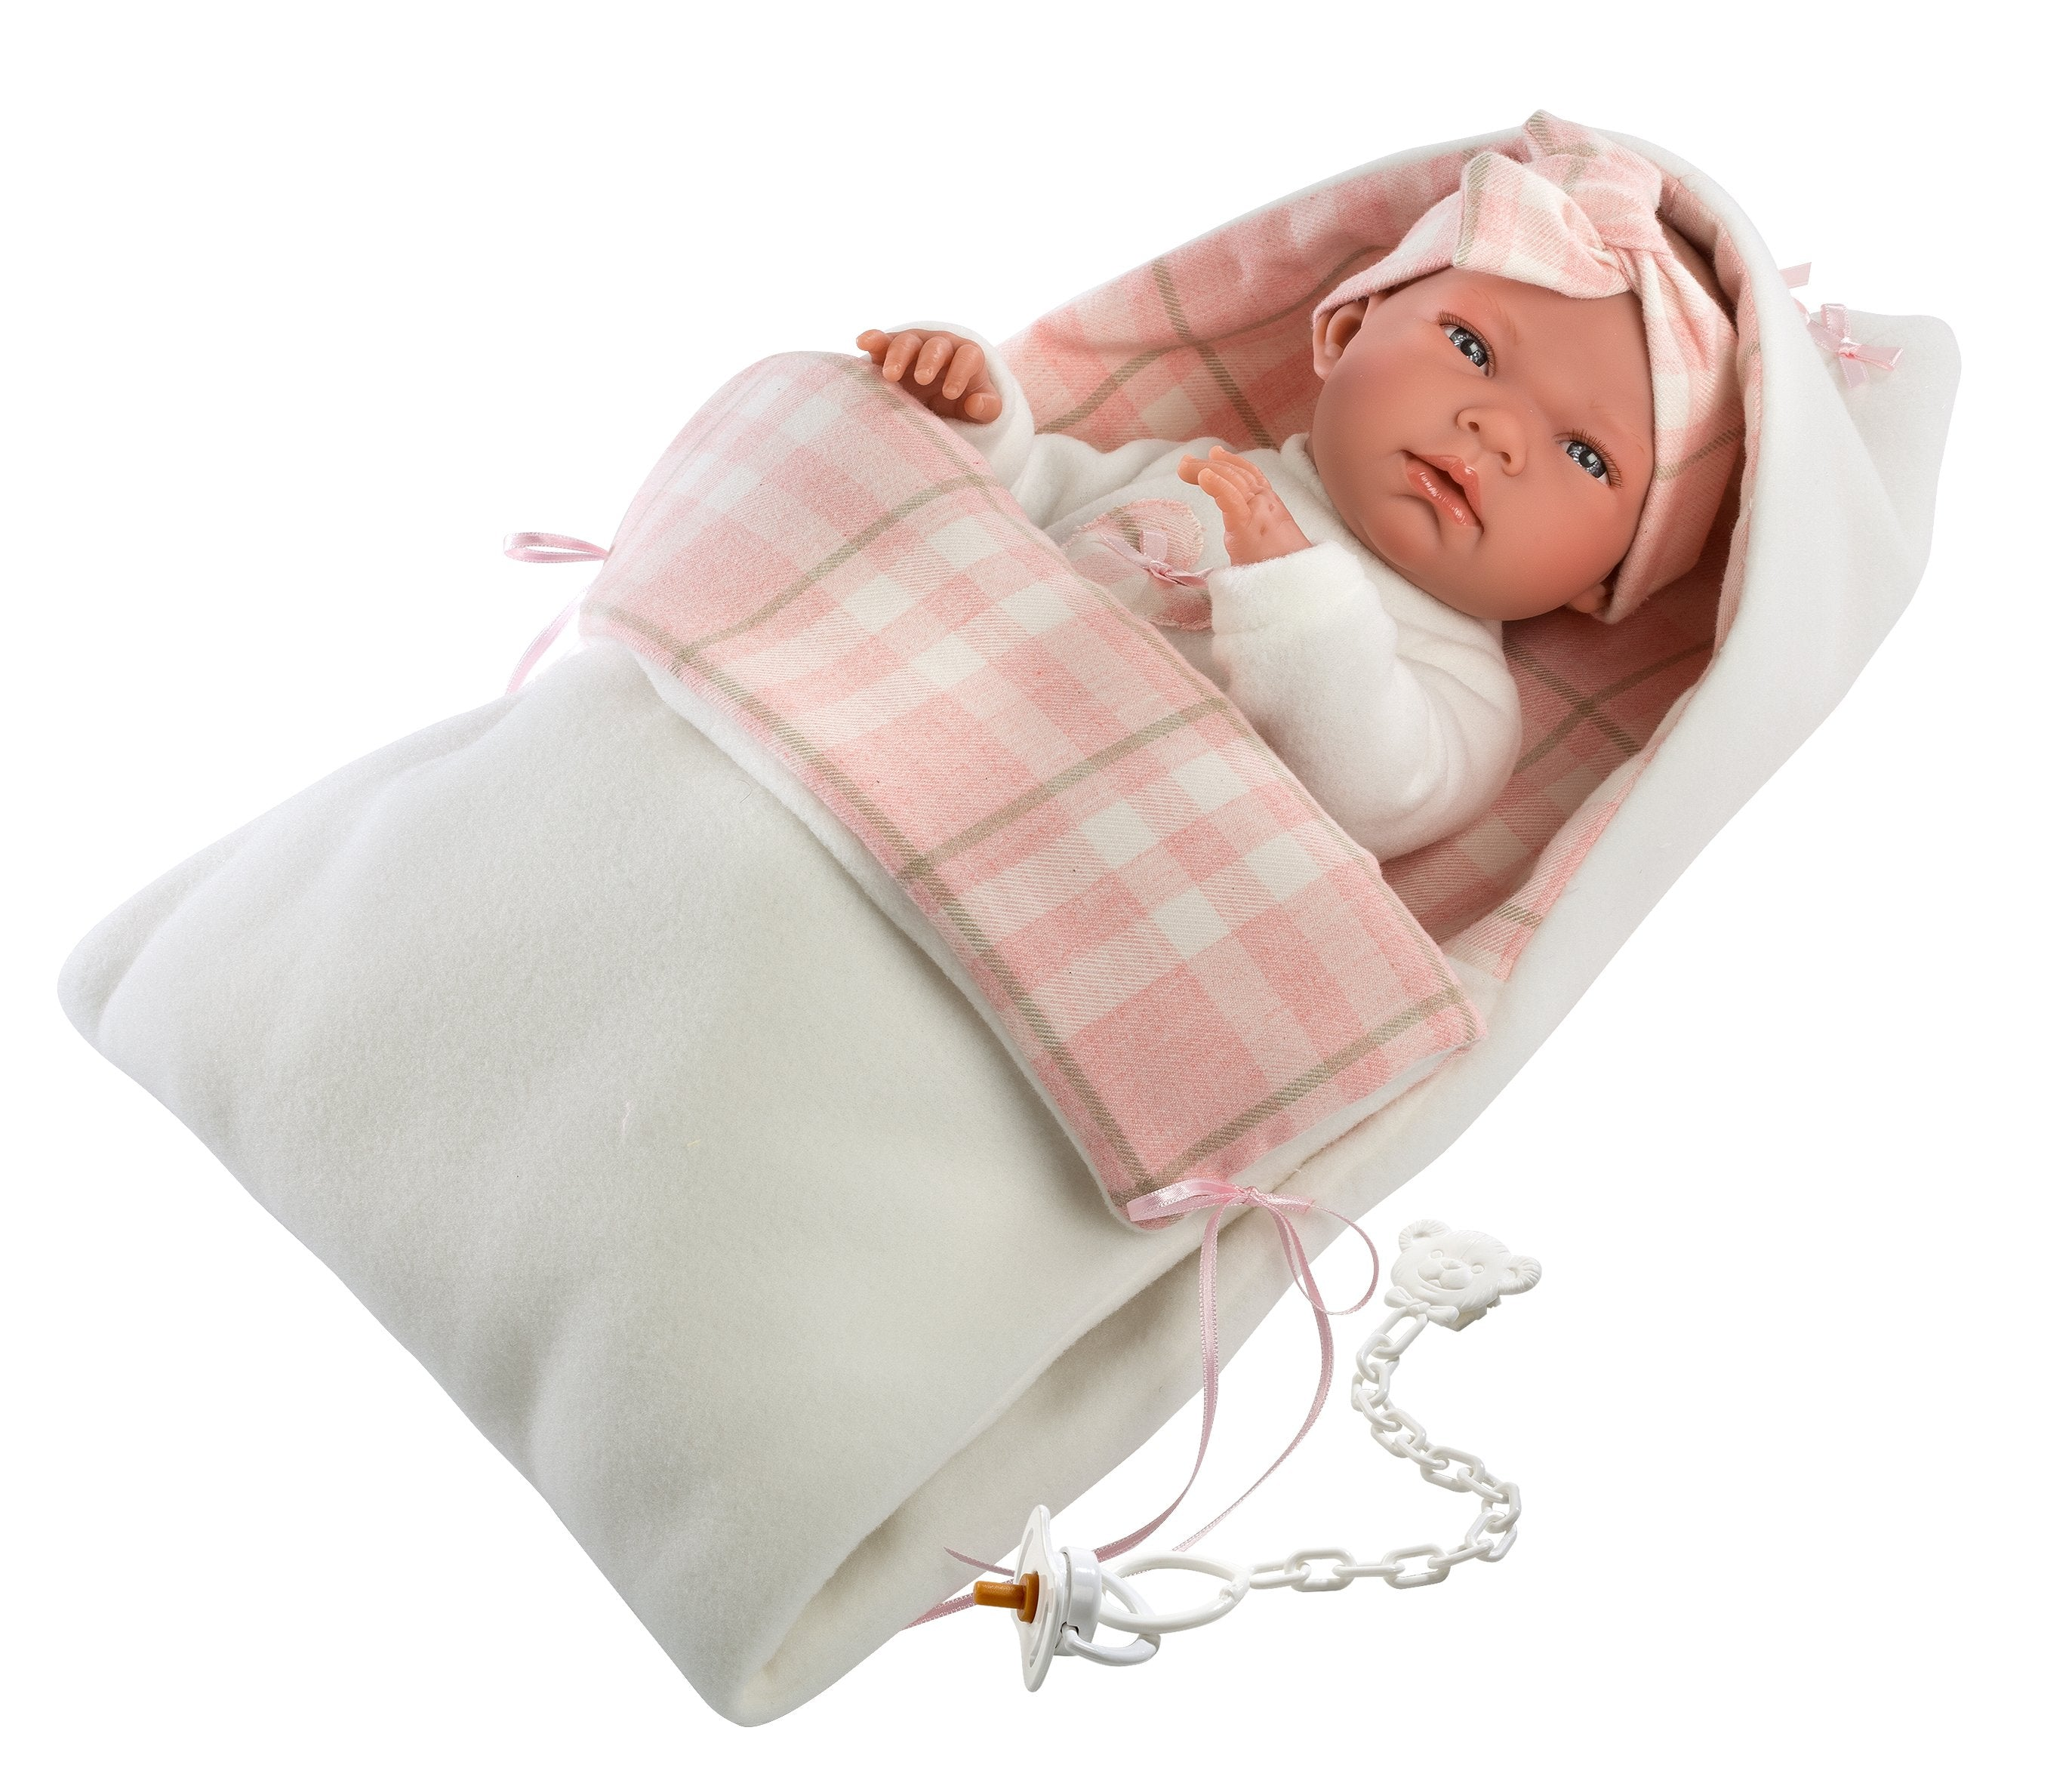 "PRE-ORDER: Emily 15.7"" Baby Girl Doll with Changing Bag"